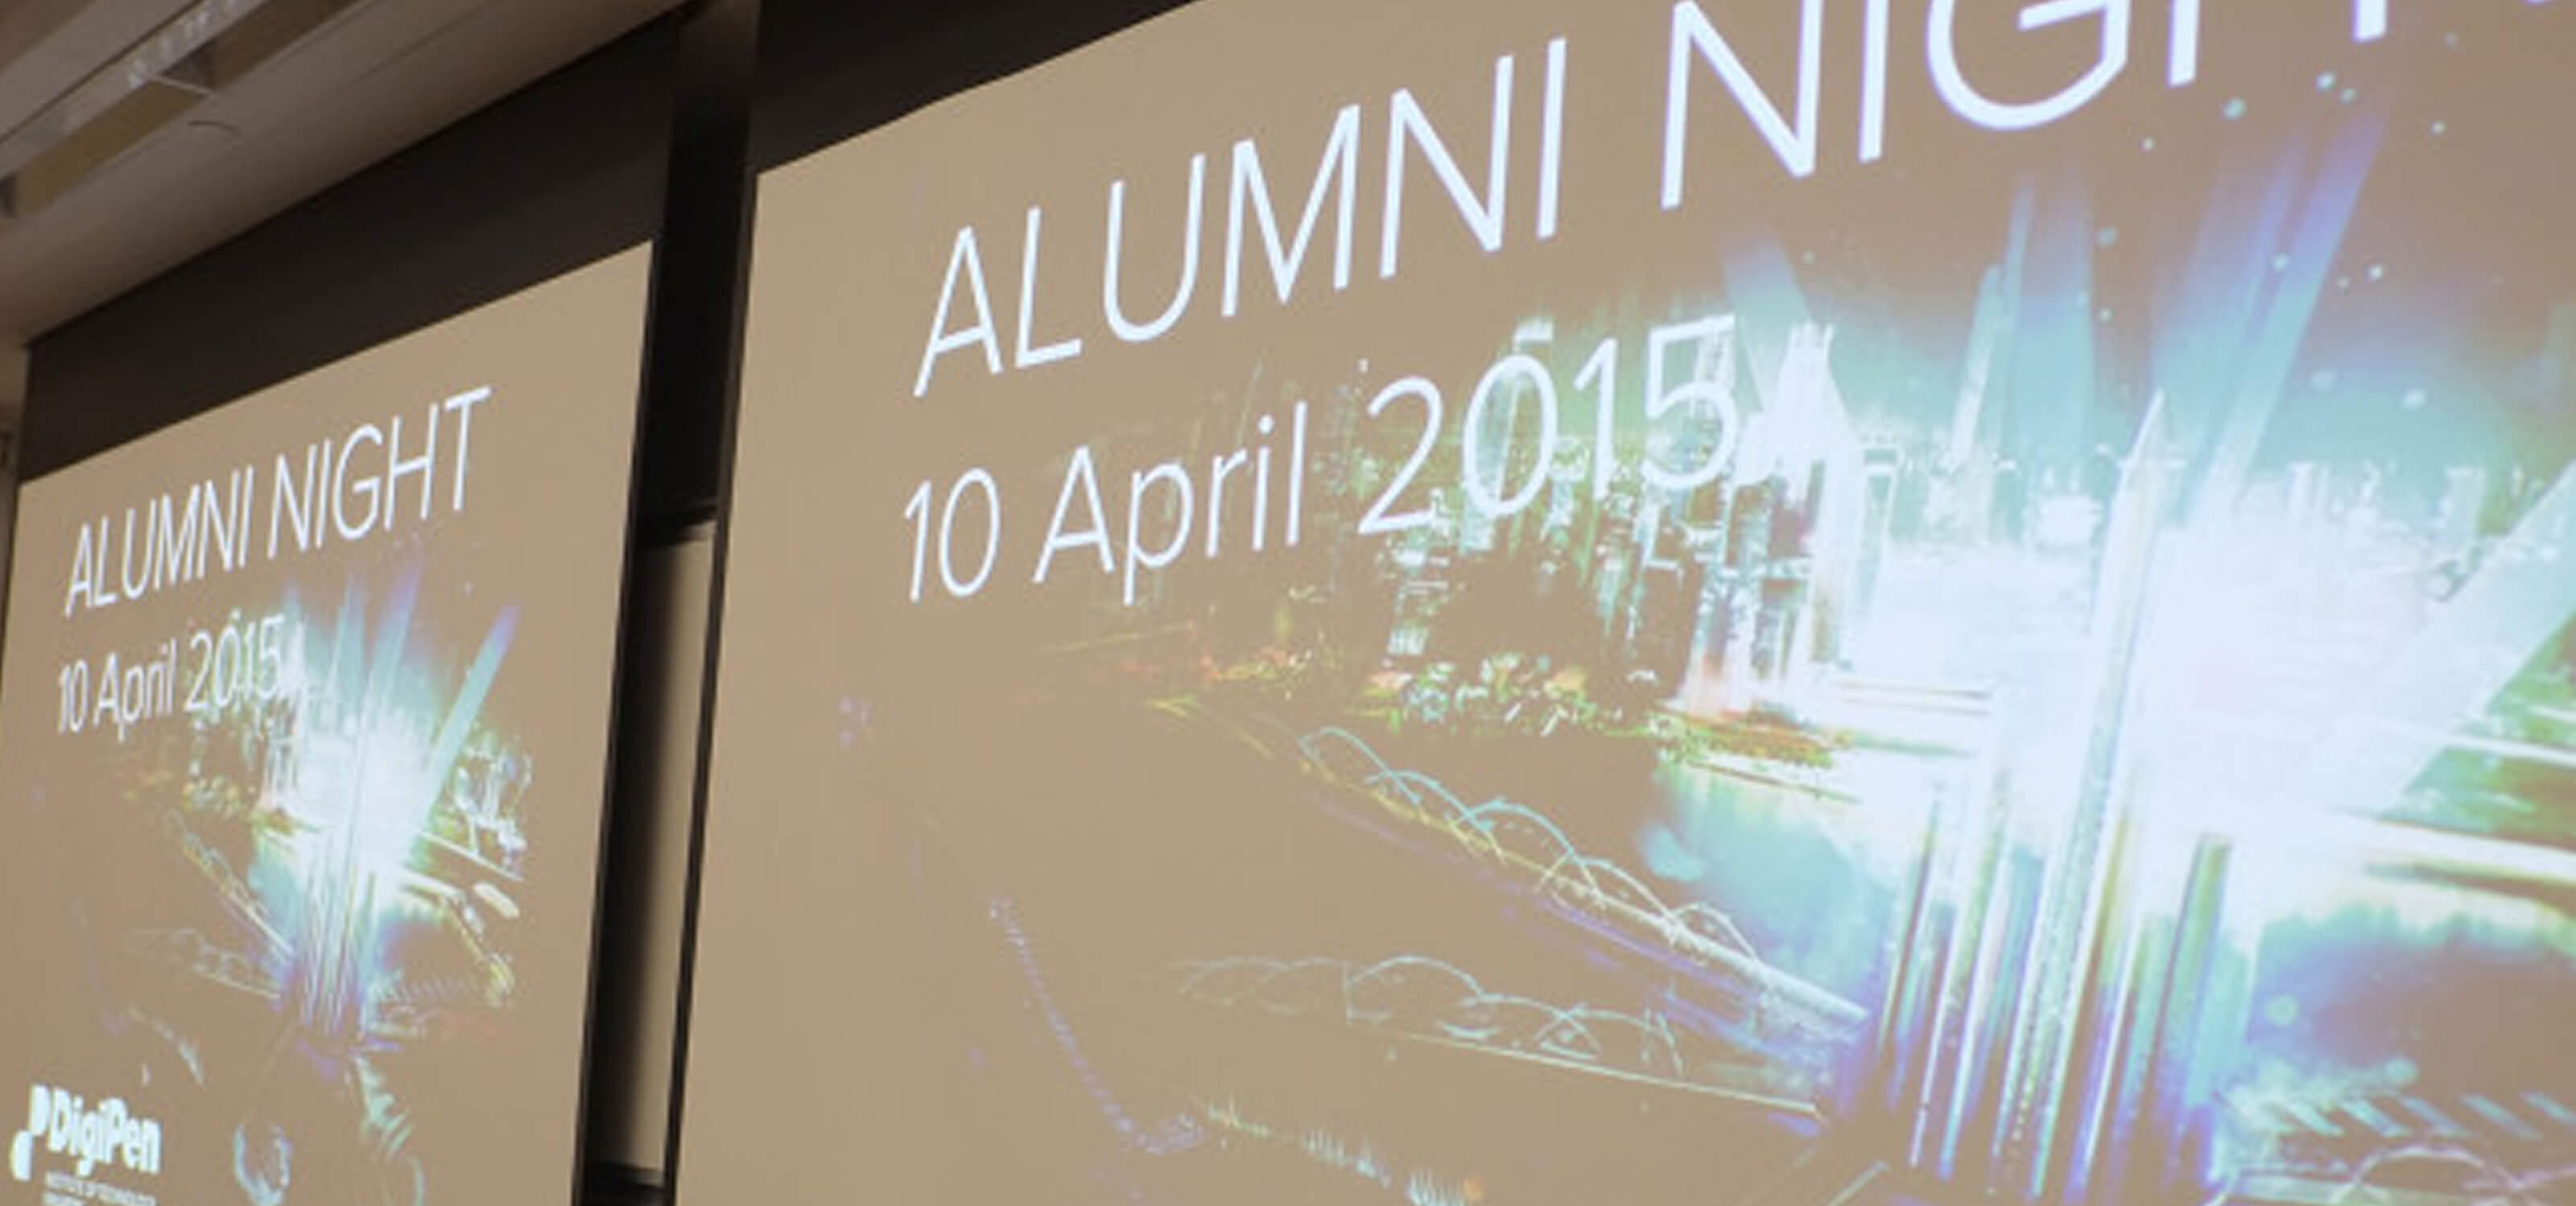 "A projection screen displays ""Alumni Night, 10 April 2015"" and a graphic of a shining futuristic city"